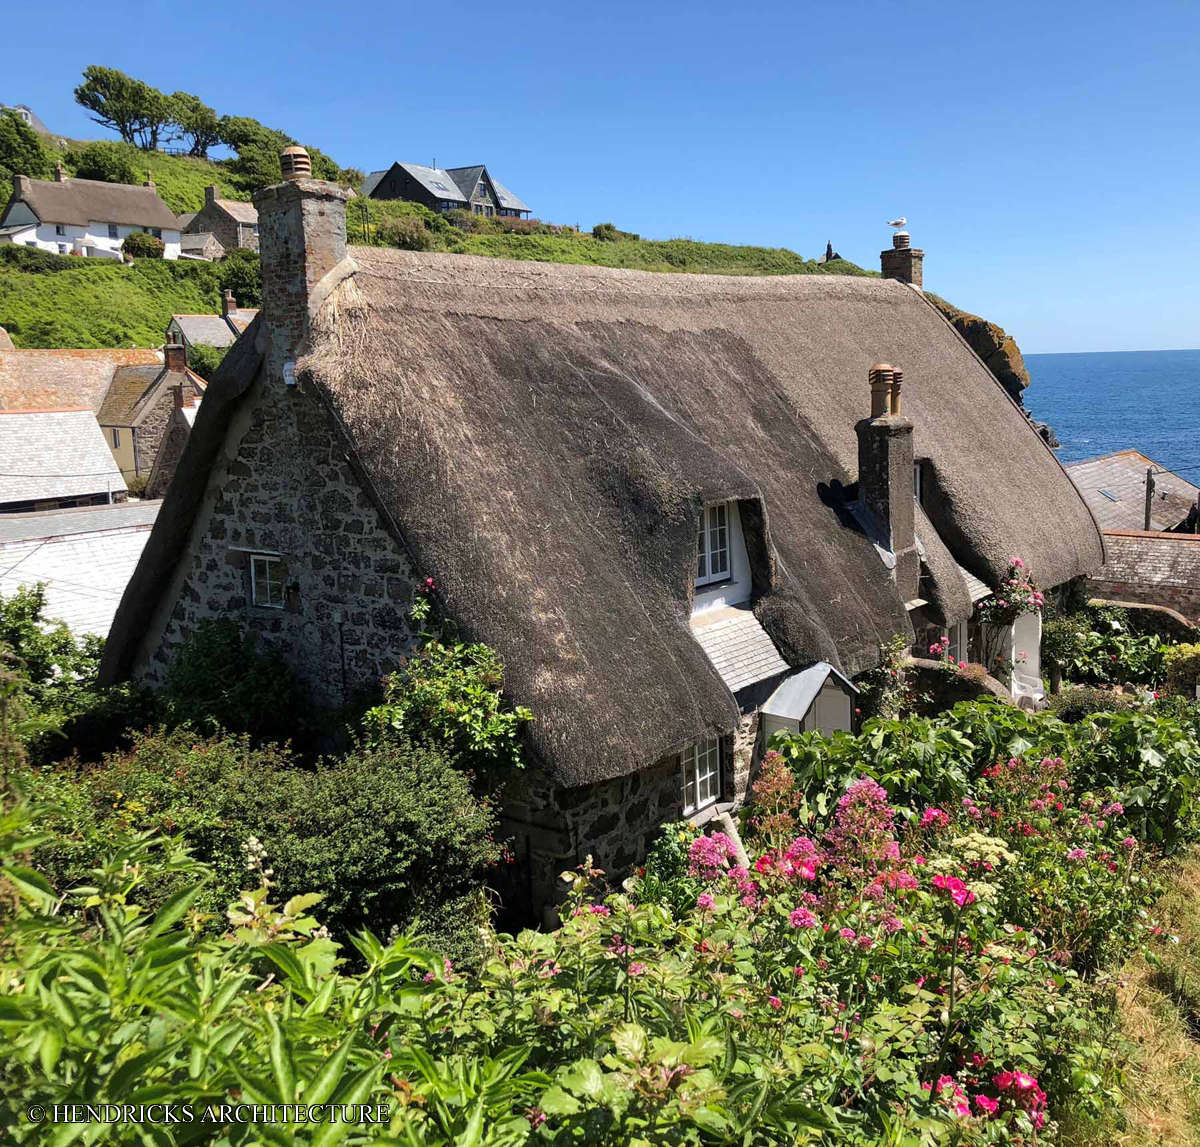 Thatch Roofing Today